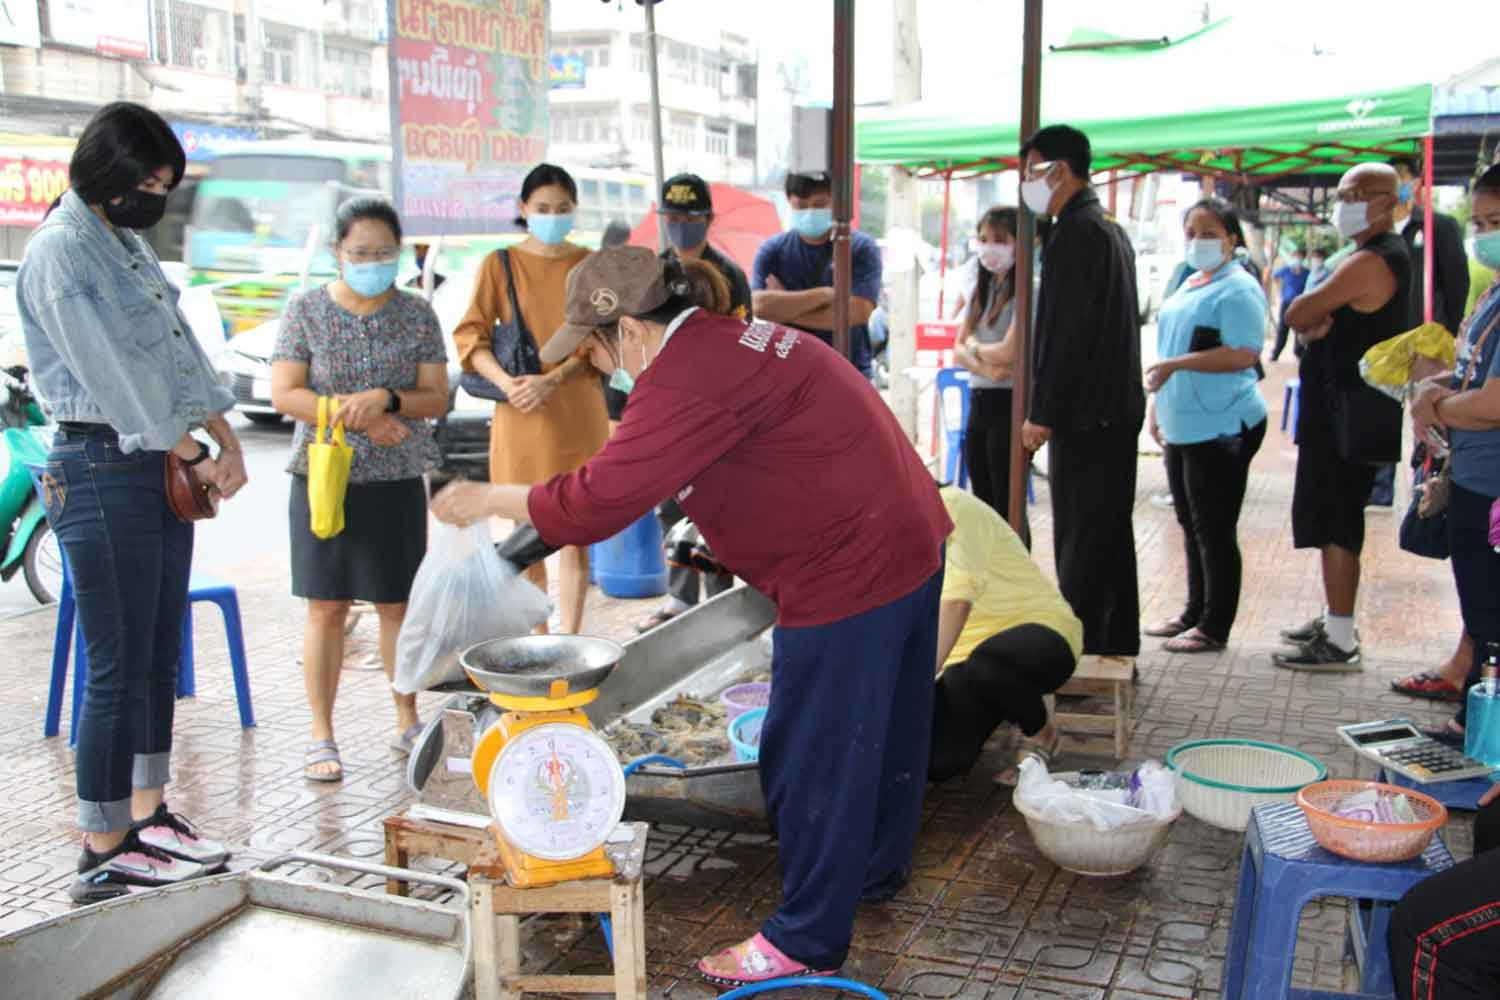 Farmers sell shrimps directly to consumers, at wholesale prices, in Muang district of Ratchaburi on Friday. (Photo: Saichol Ochkajon)